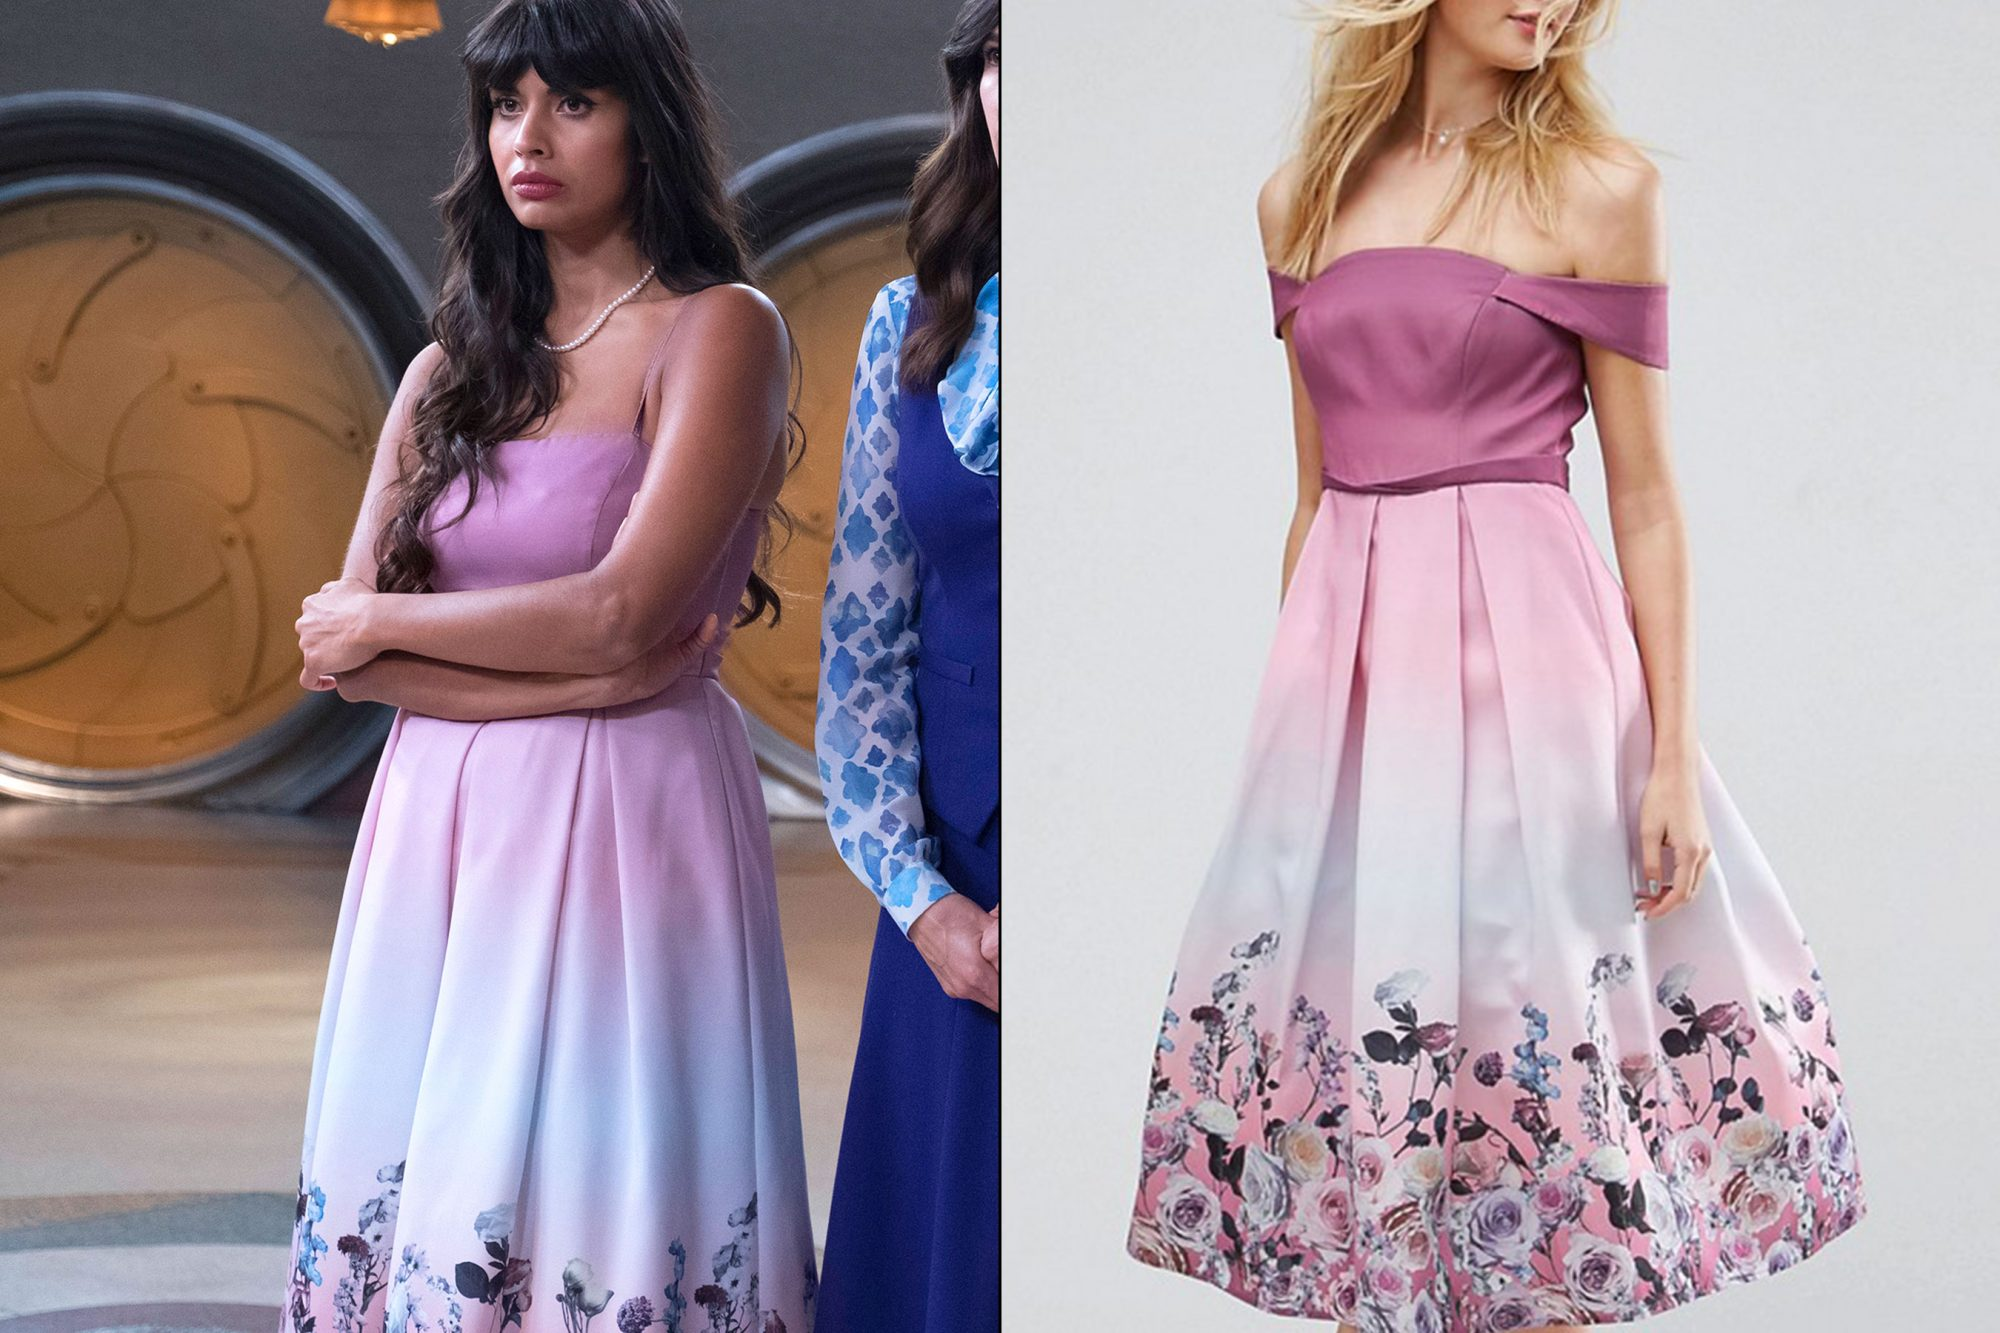 Tahani's (Jameela Jamil) floral dress on The Good Place